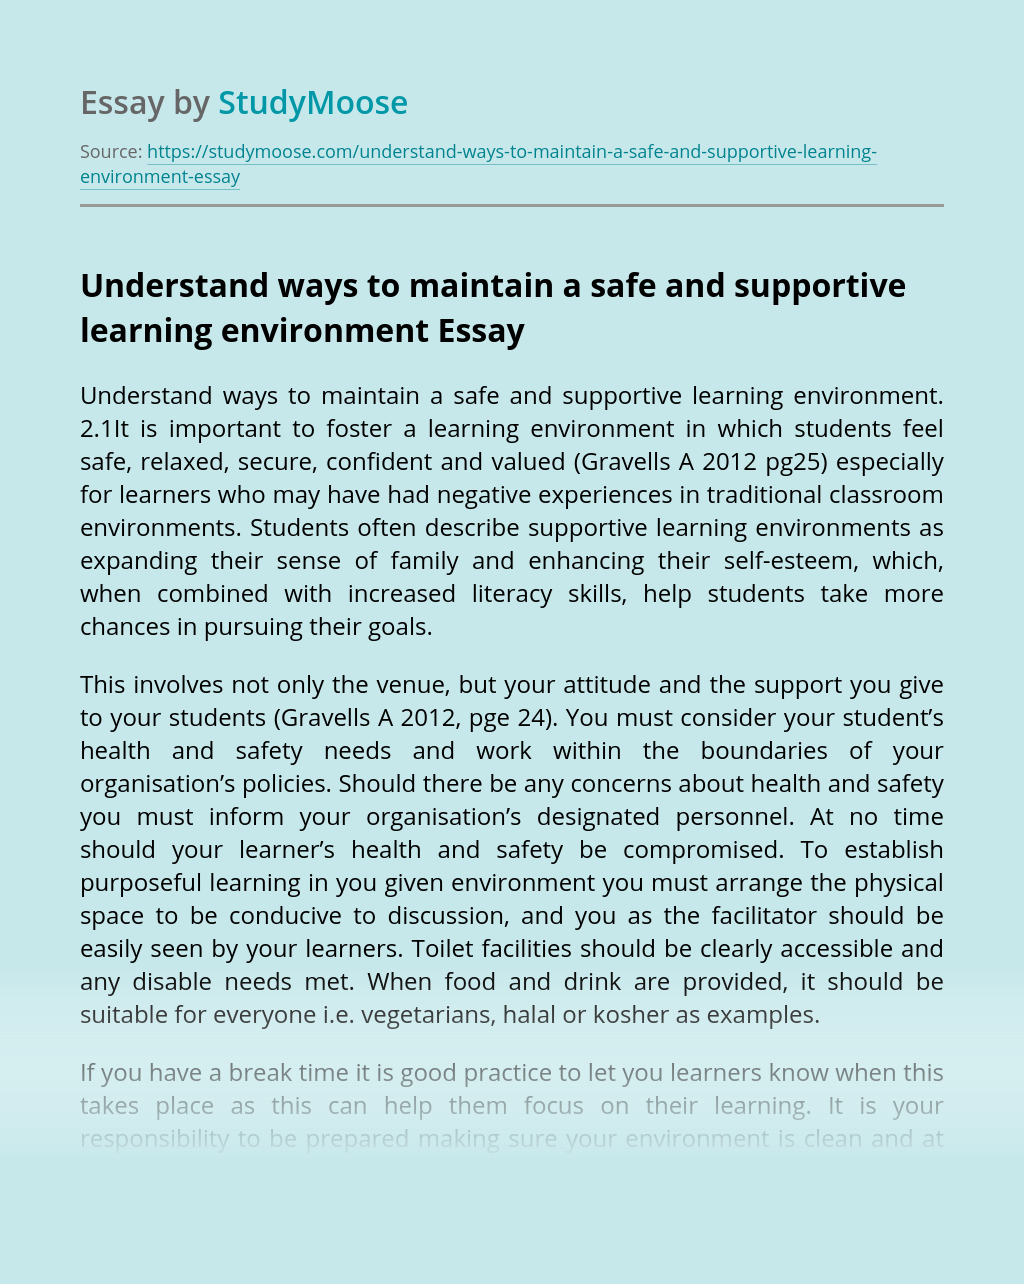 Understand ways to maintain a safe and supportive learning environment